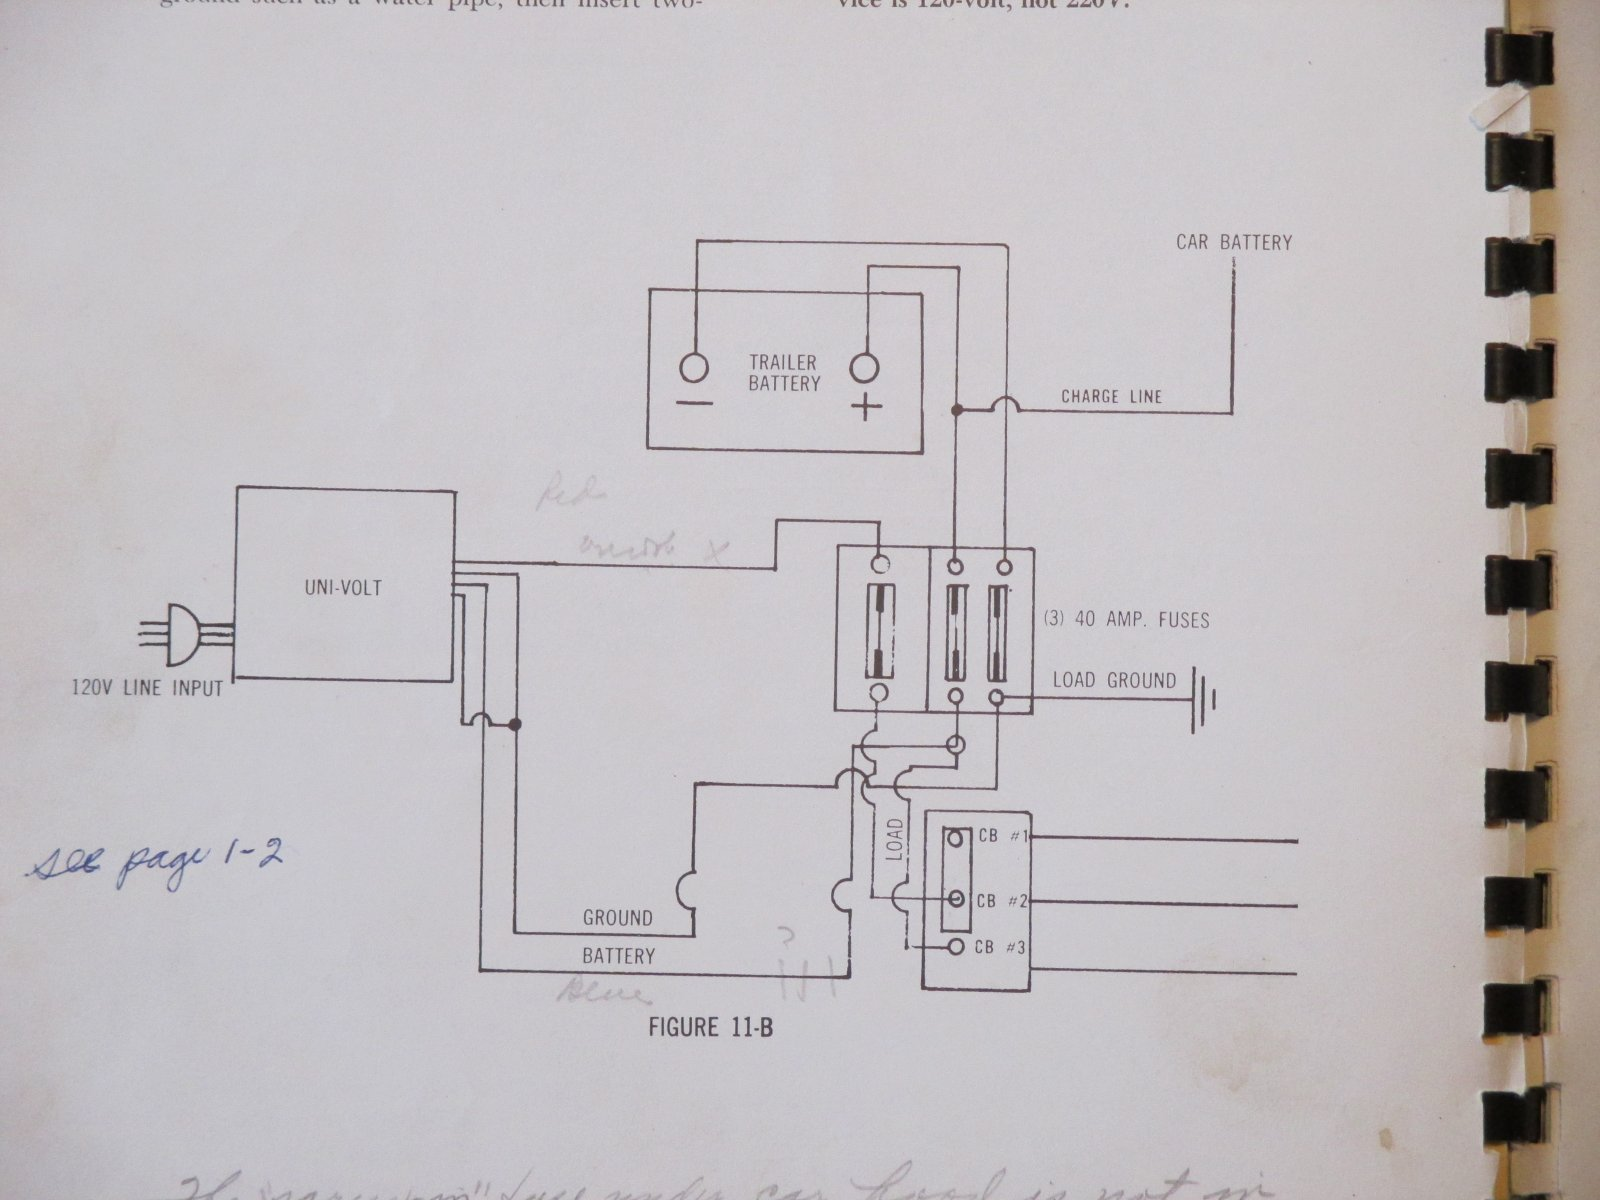 Lovely Vintage Warlock Wiring Schematic Images - Simple Wiring ...